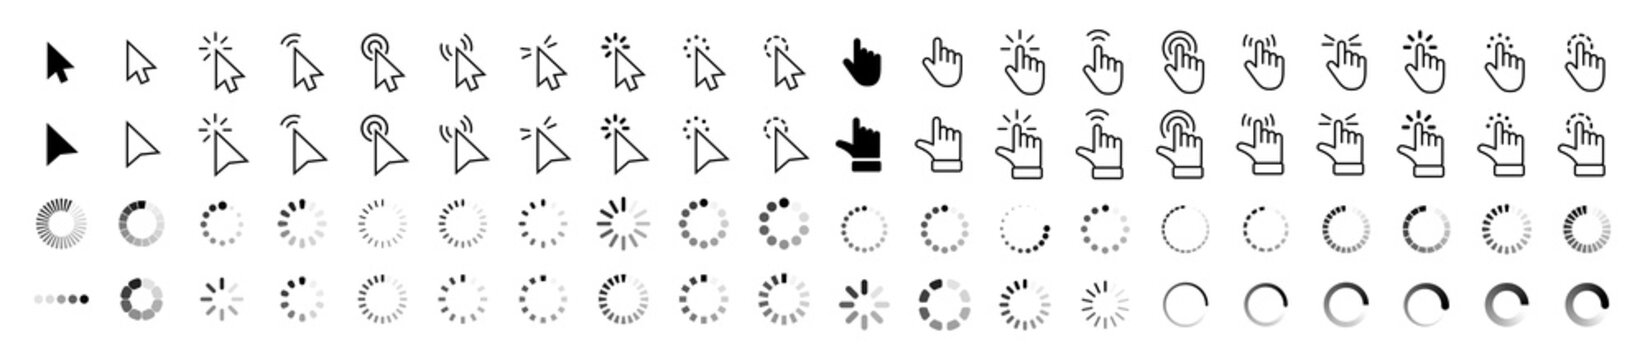 Computer mouse click cursor gray arrow icons set and loading icons. Cursor icon. Vector illustration. Mouse click cursor collection.